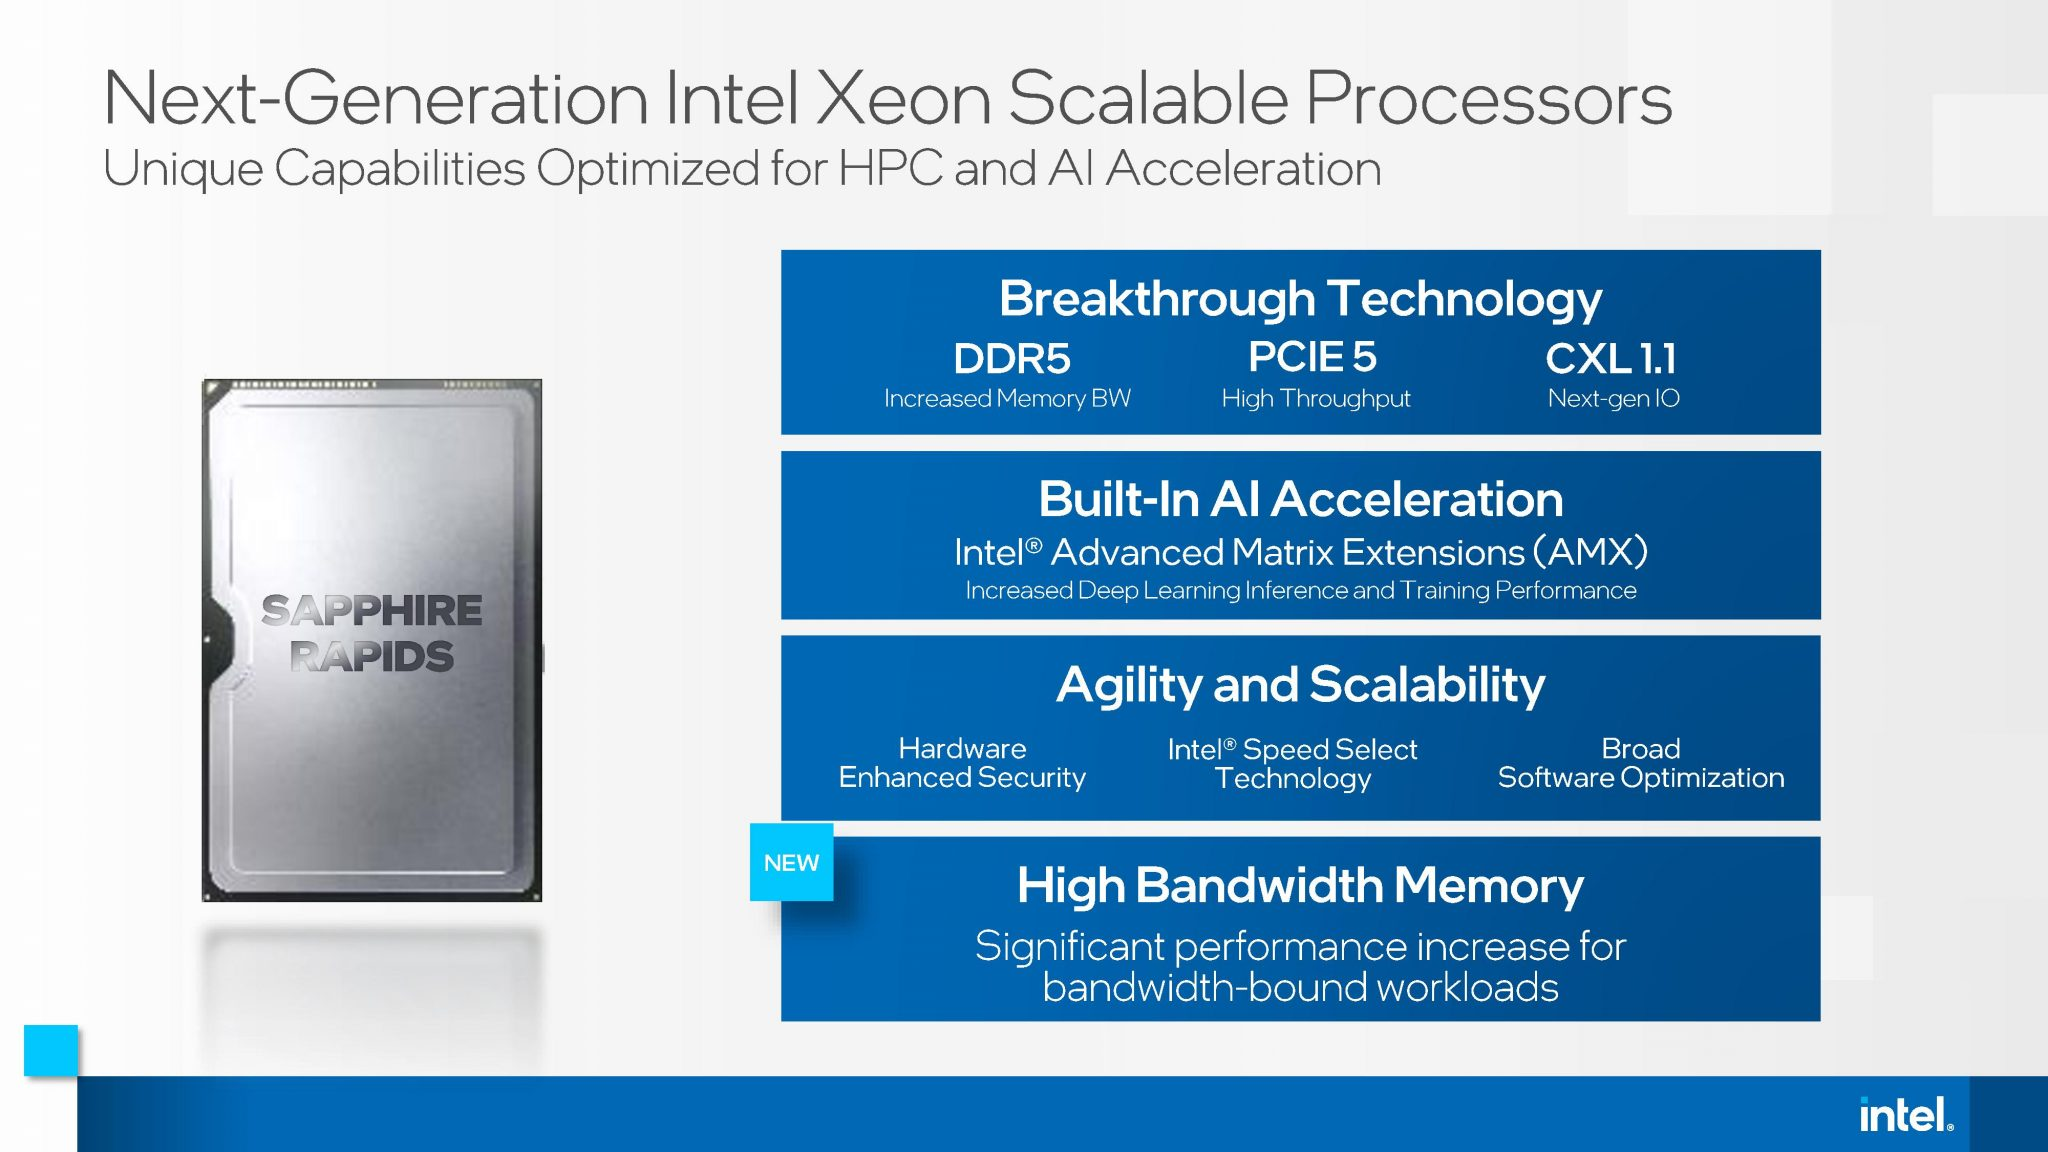 PDF Final Intel ISC June 18 Deck for Press Briefing -page-017 via AnandTech